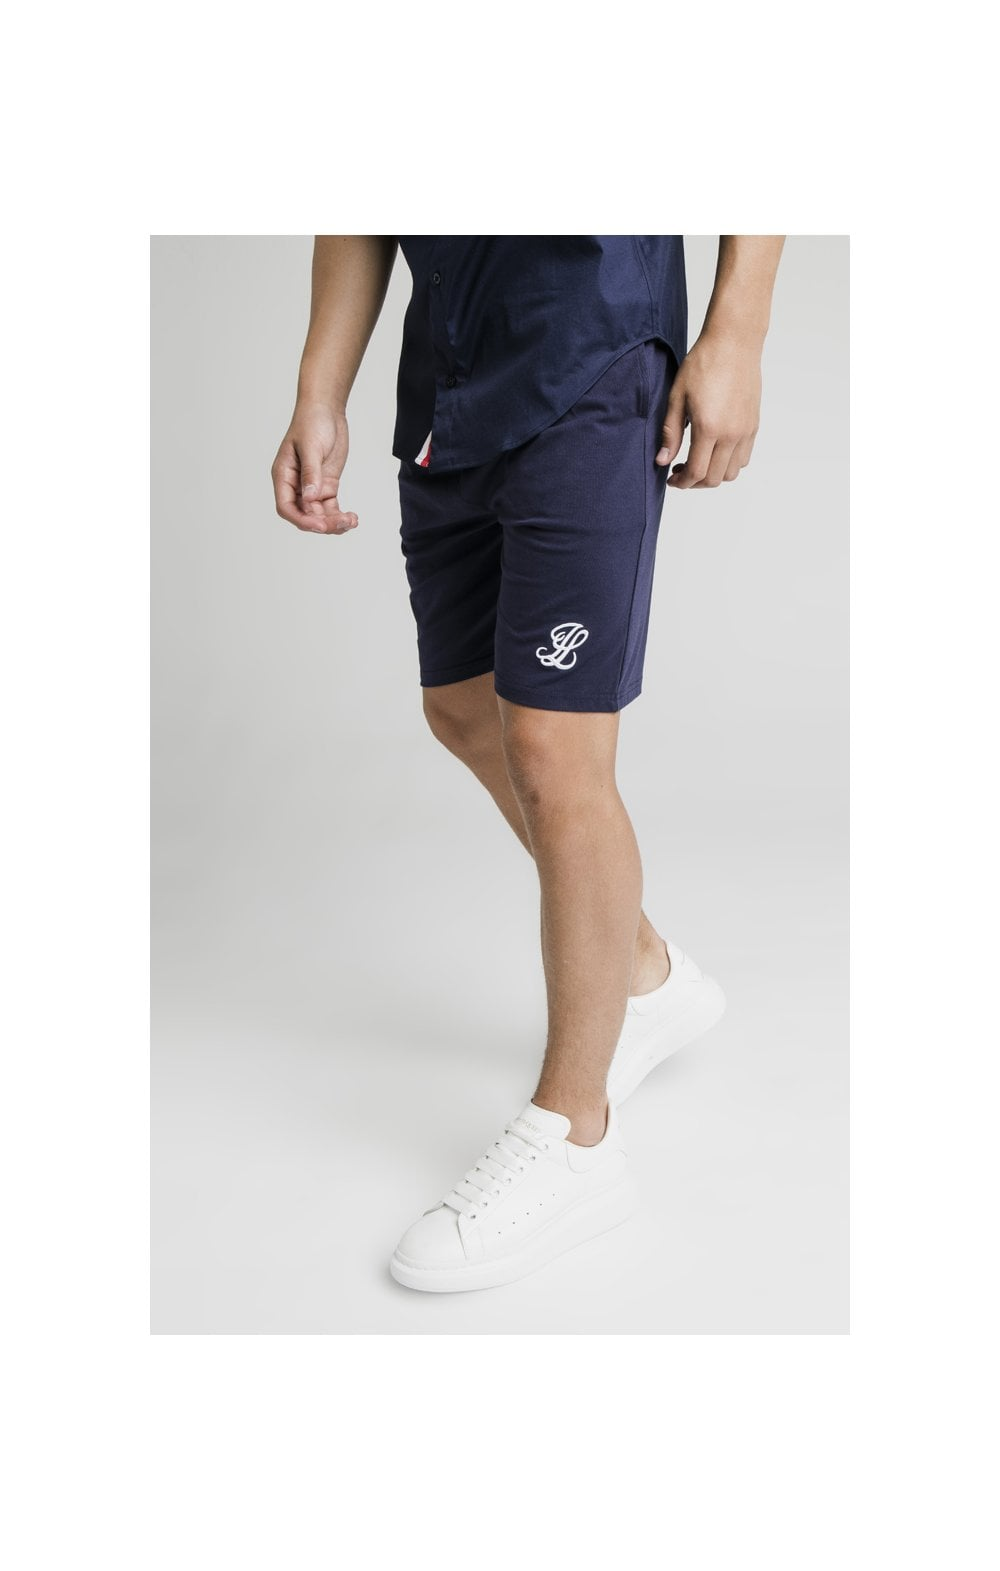 Load image into Gallery viewer, Illusive London Side Tape Jersey Shorts - Navy (2)